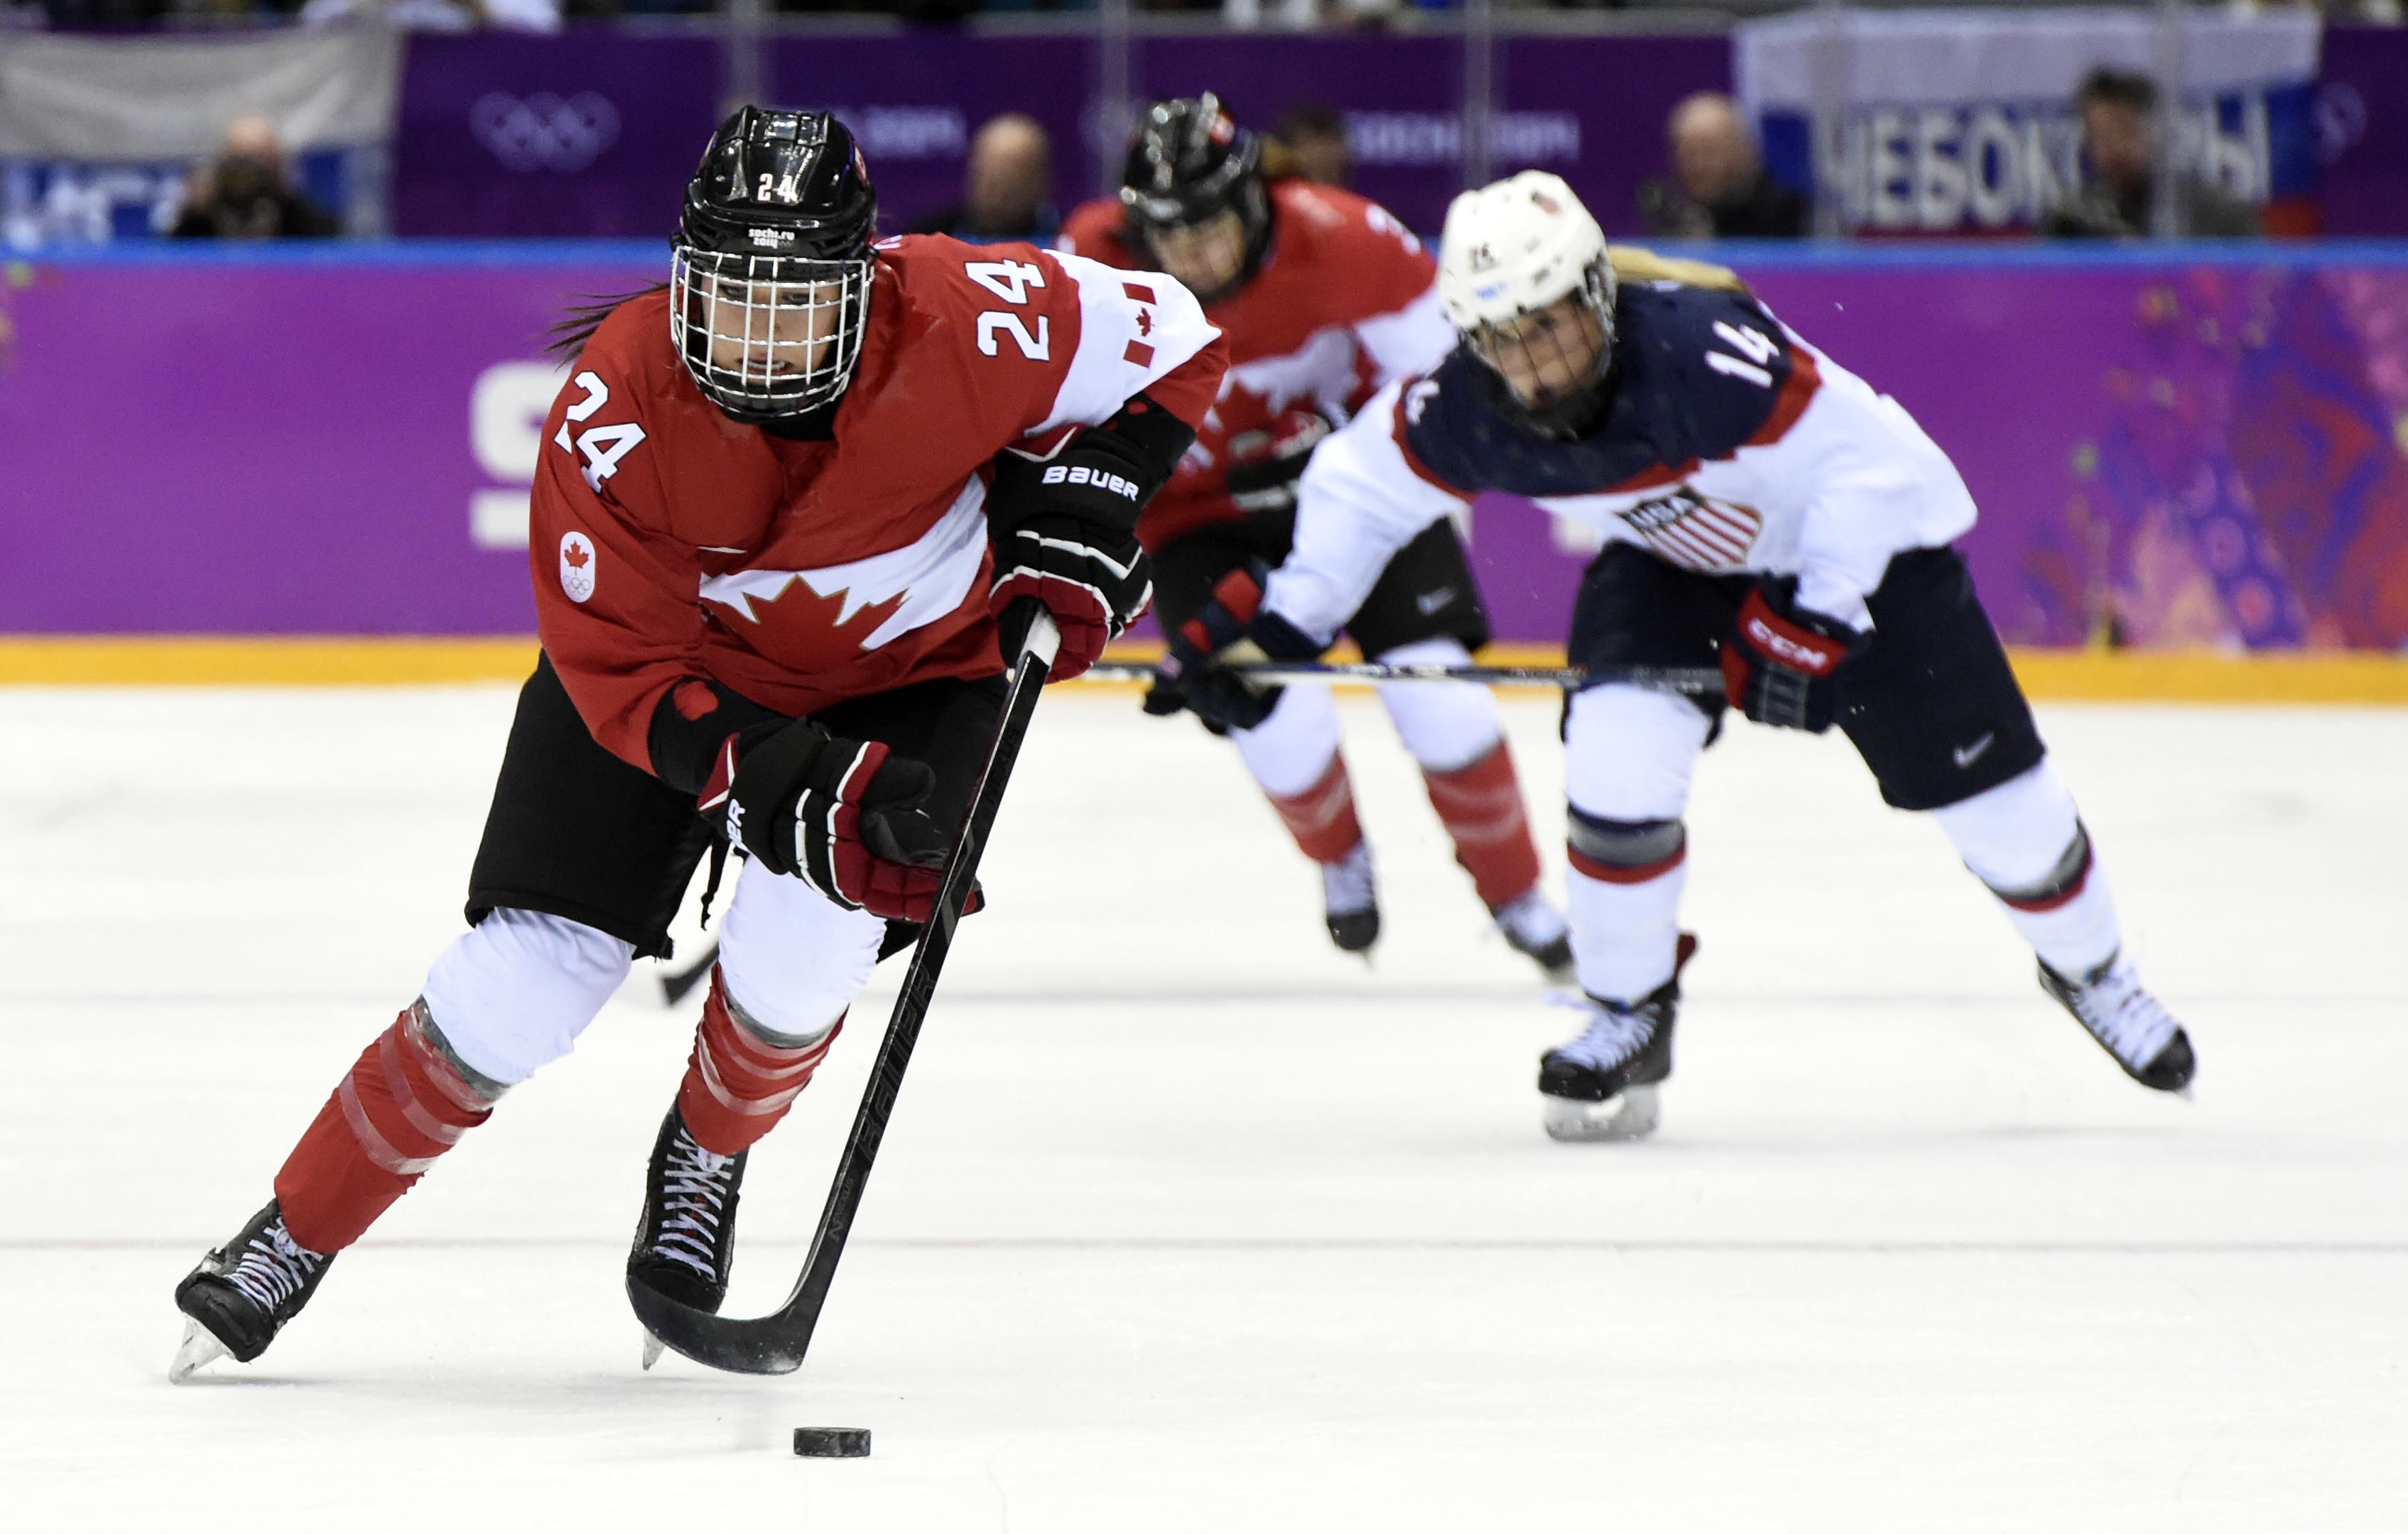 Natalie Spooner leads Team Canada in offense with three points through three games, as the Canadians face the U.S. once more for gold in the 4 Nations Cup championship game Sunday.